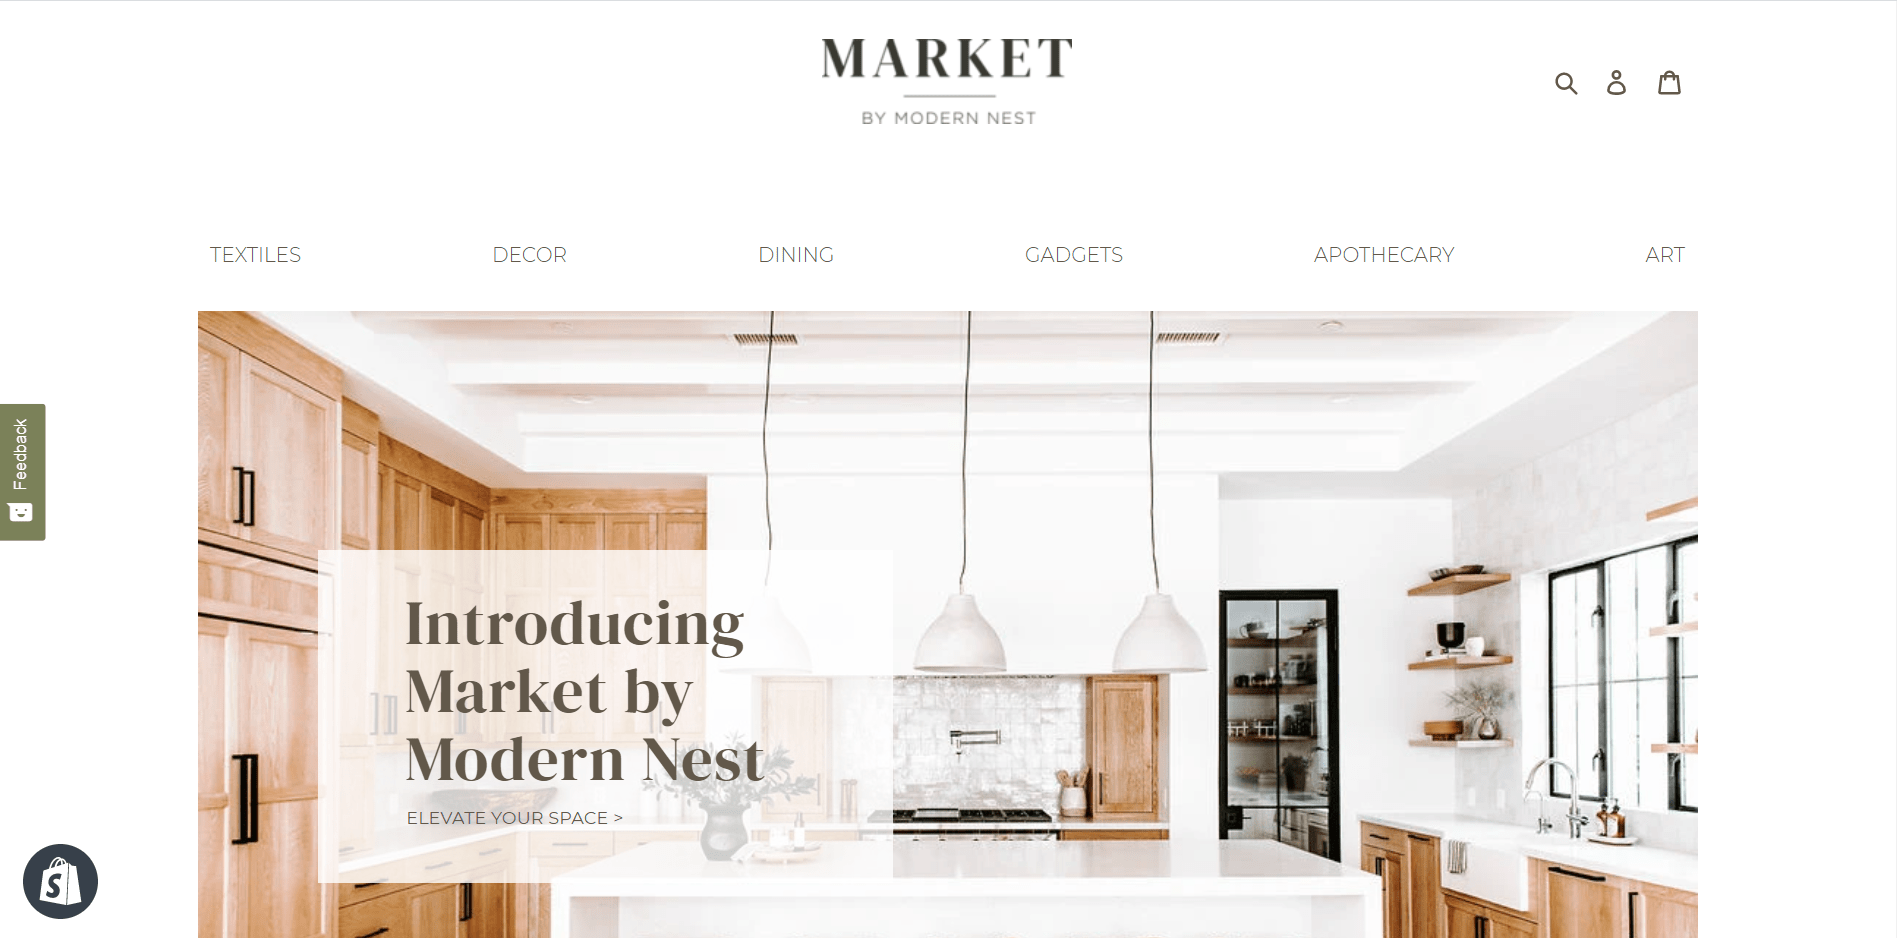 Market by Modern Nest